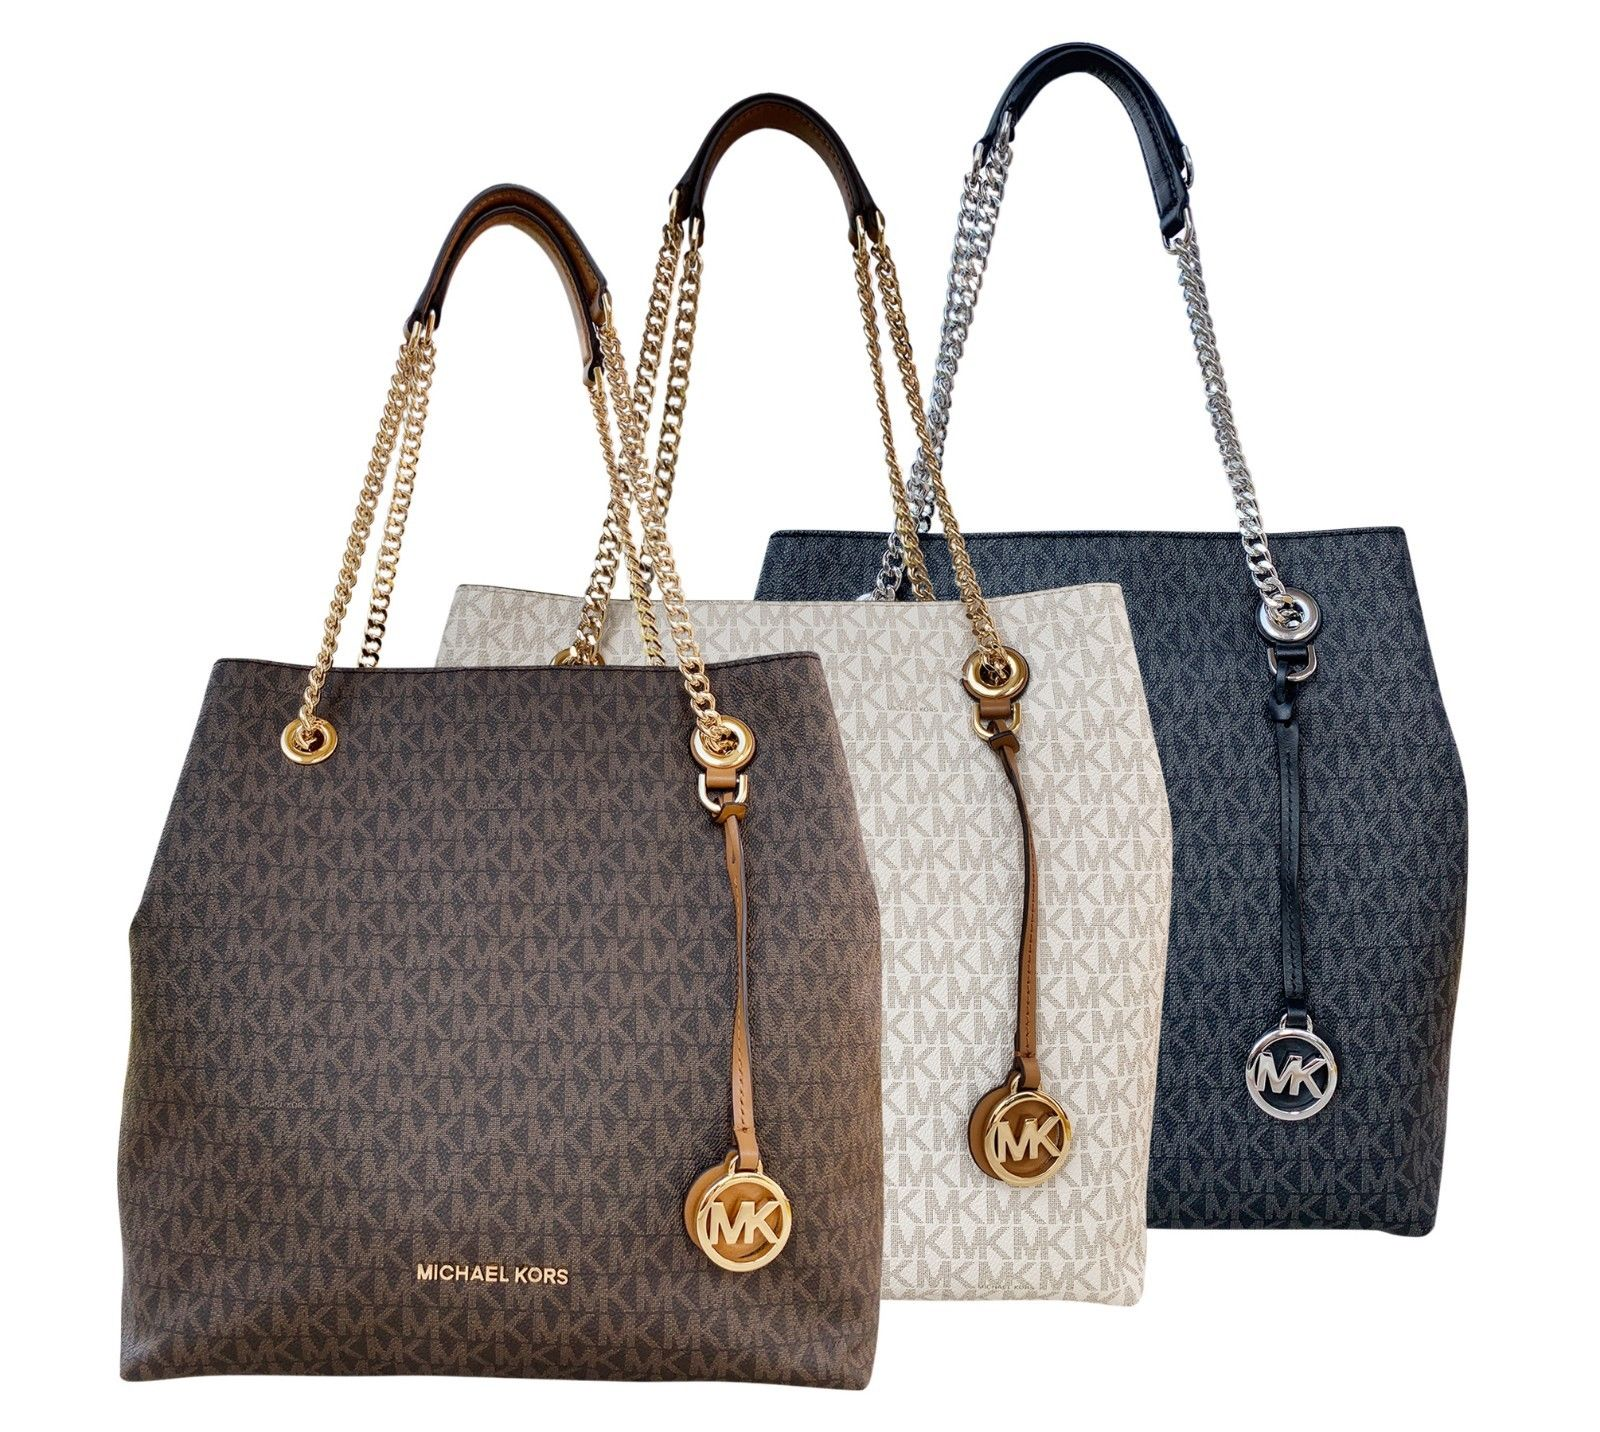 Only $150 - Happy Bday Gift Idea For Her  - Michael Kors Jet Set Chain Large Shoulder Tote MK Sign